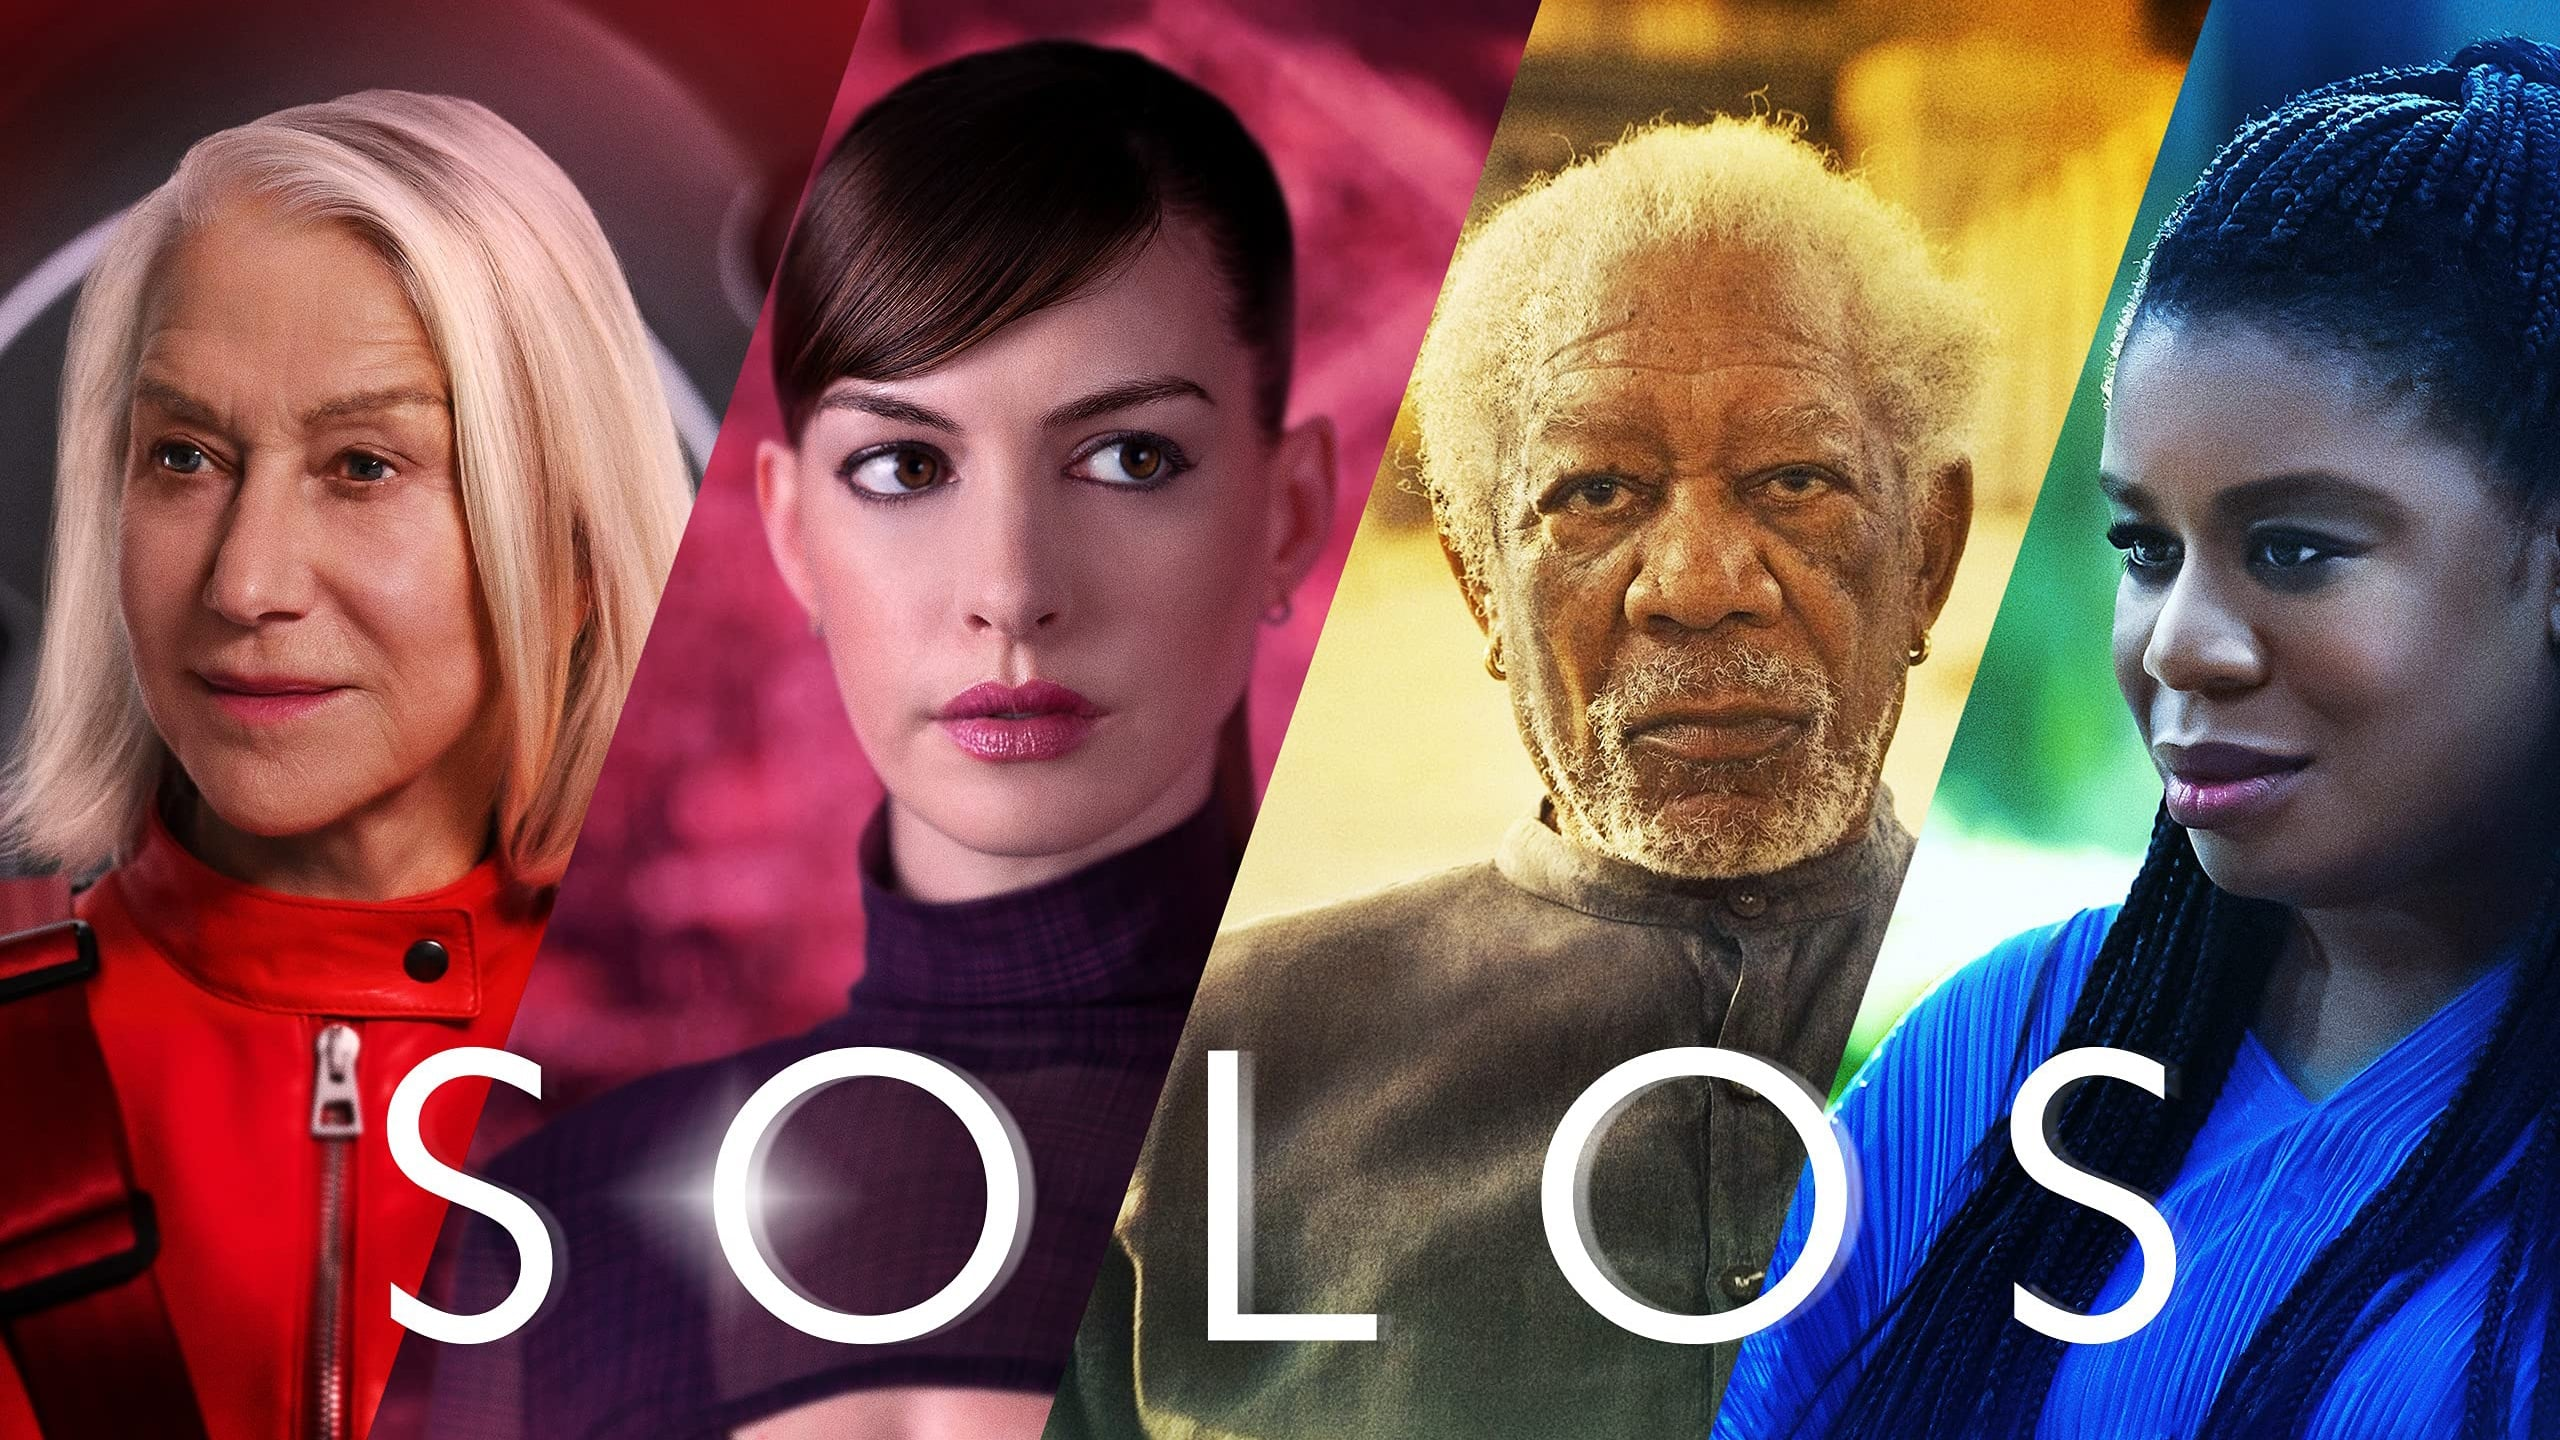 Trailer for anthology series Solos featuring Morgan Freeman and Anne Hathaway